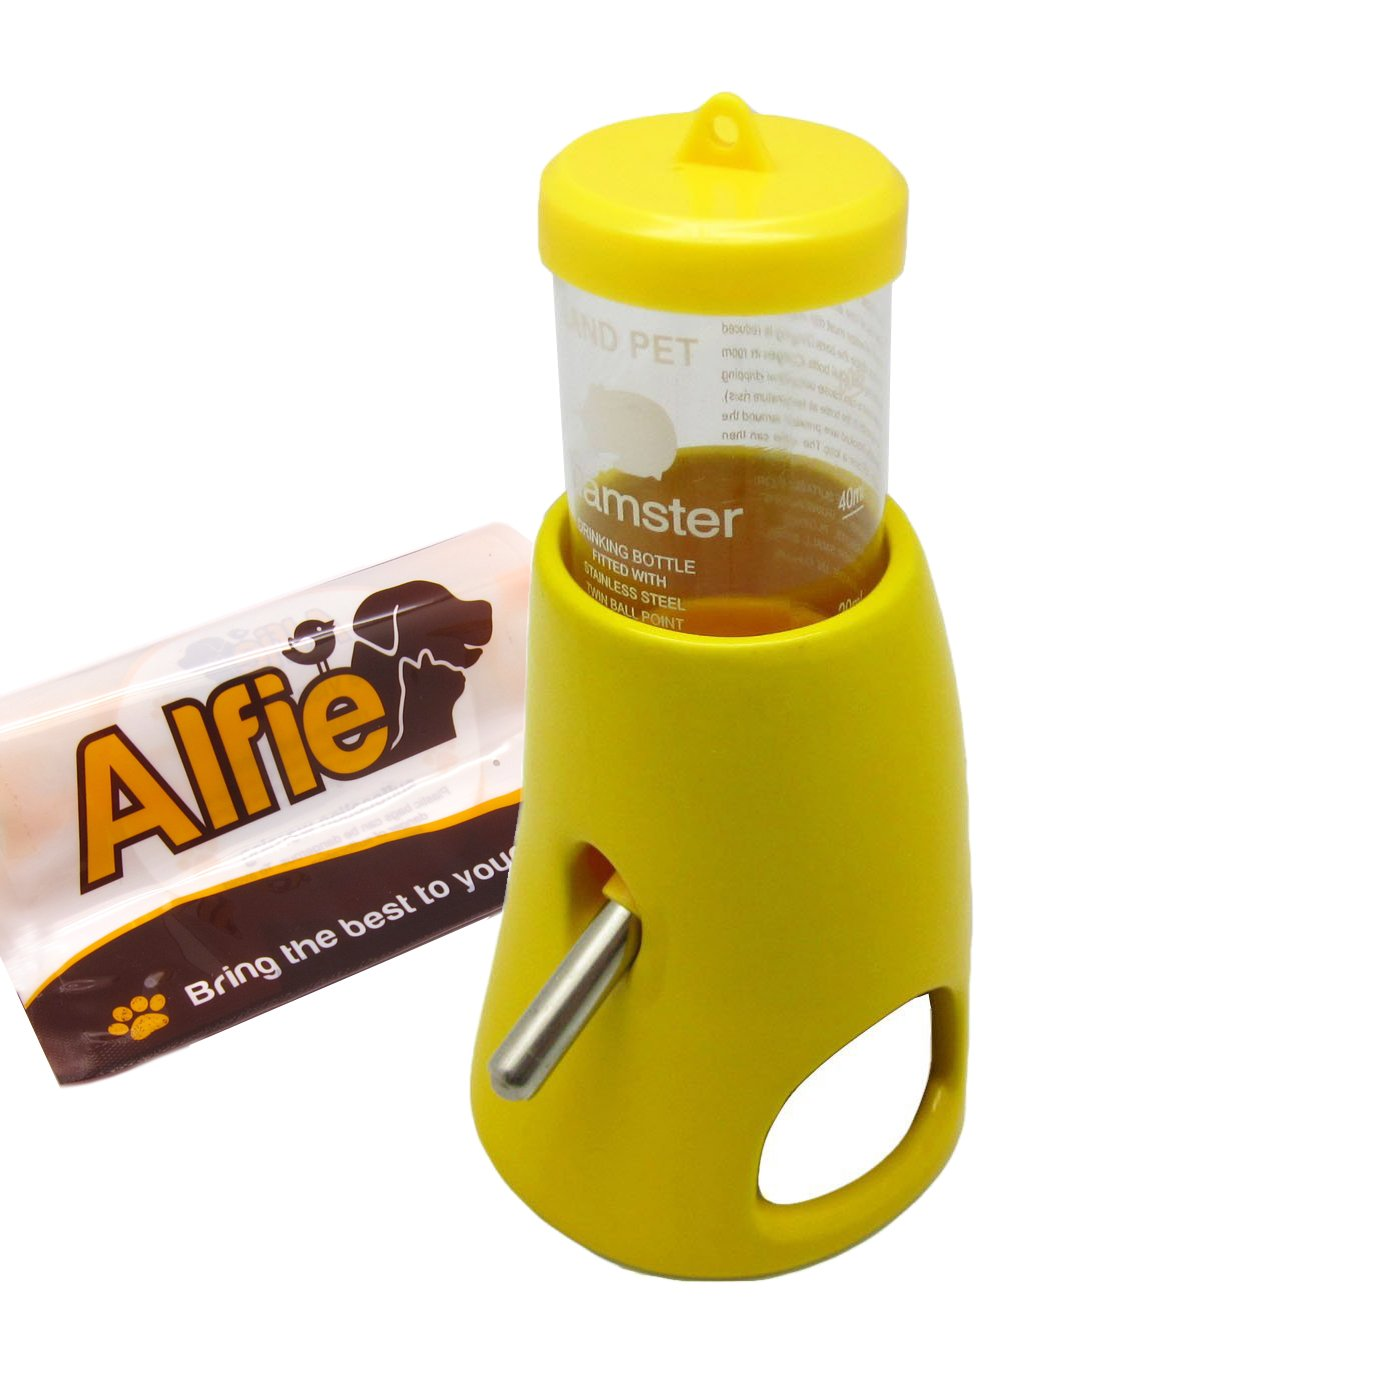 Alfie Pet - 2-in-1 Water Bottle with Hut for Small Animals Like Dwarf Hamster and Mouse - Color: Yellow